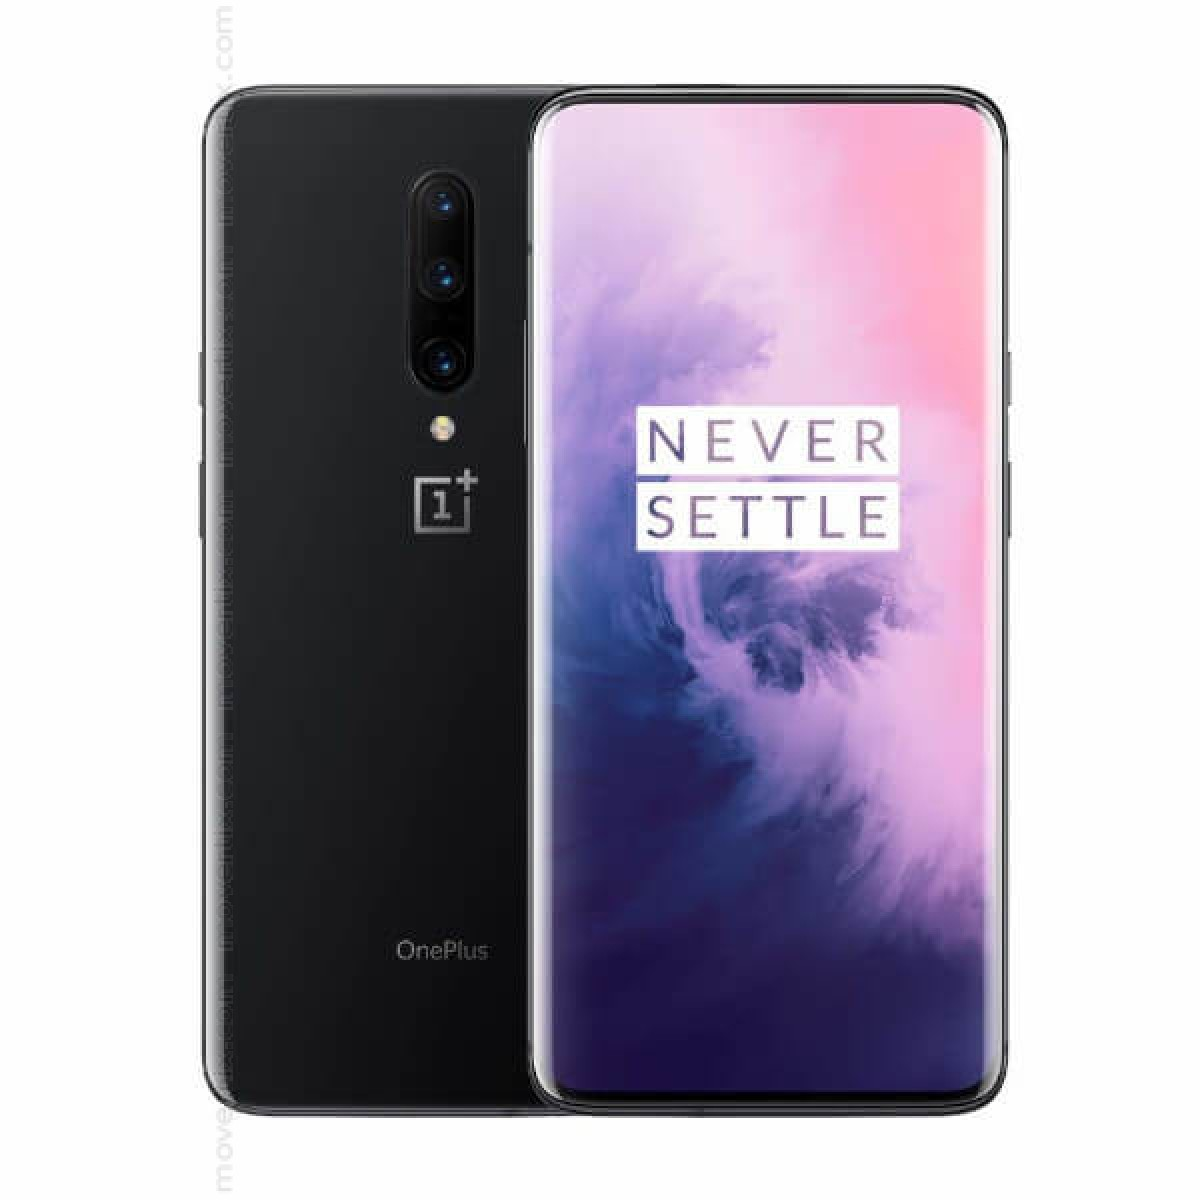 OnePlus 7 Pro Dual SIM Mirror Gray 128GB and 6GB RAM